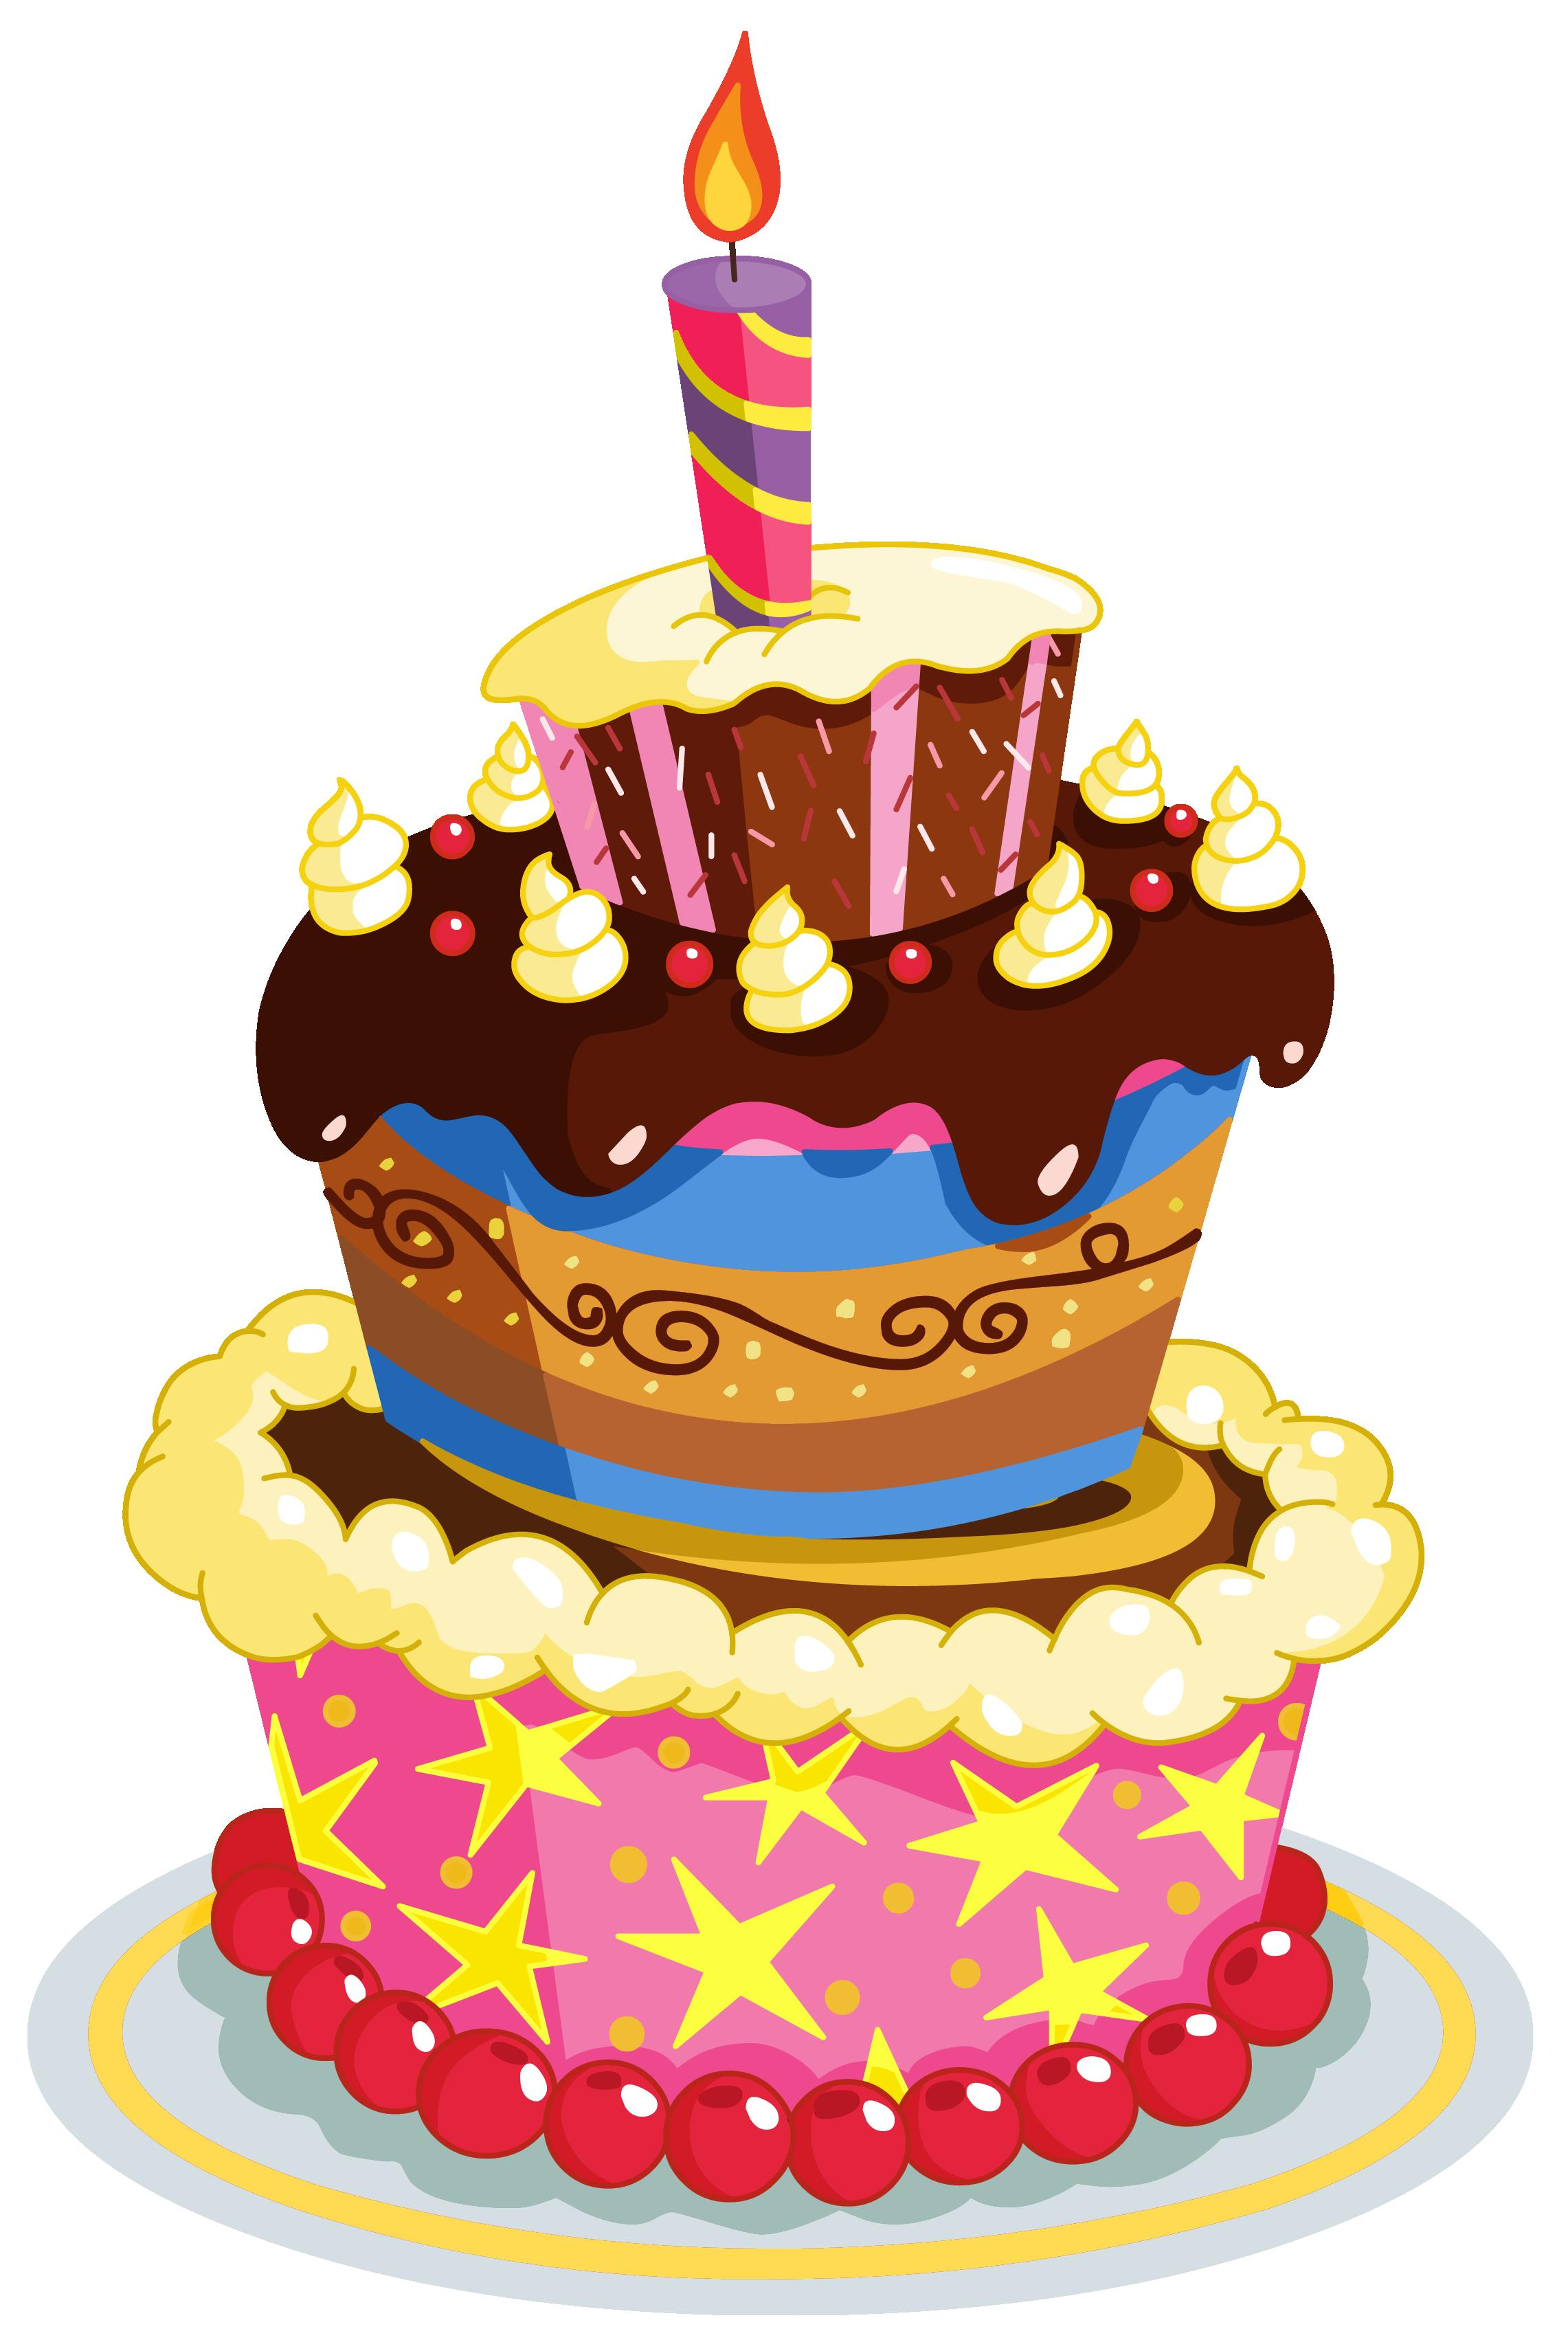 first birthday cake clipart ; Colorful_Birthday_Cake_PNG_Clipart